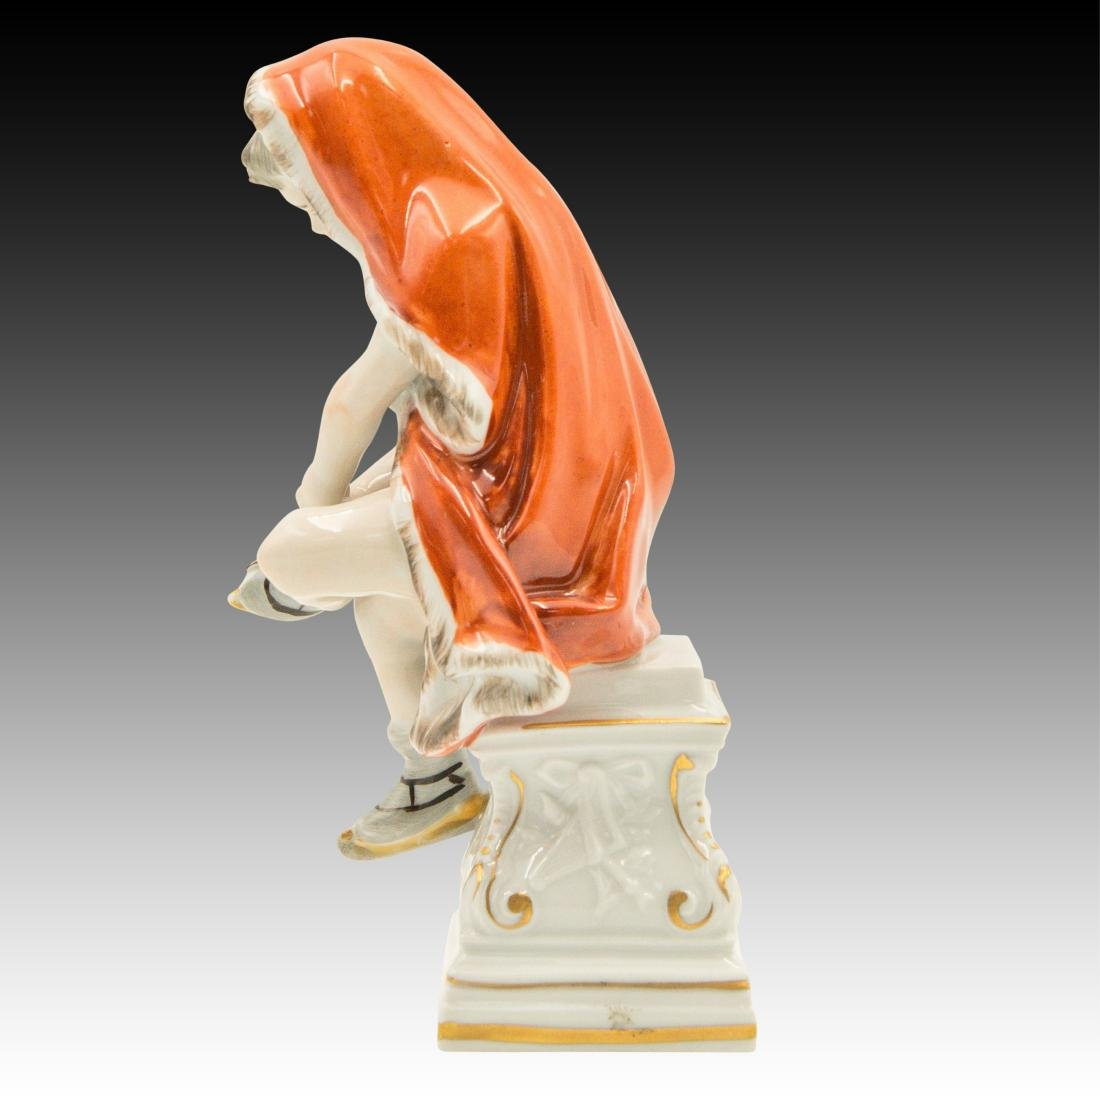 Dresden Figurine Young Girl in Red Cloak Skating - 4